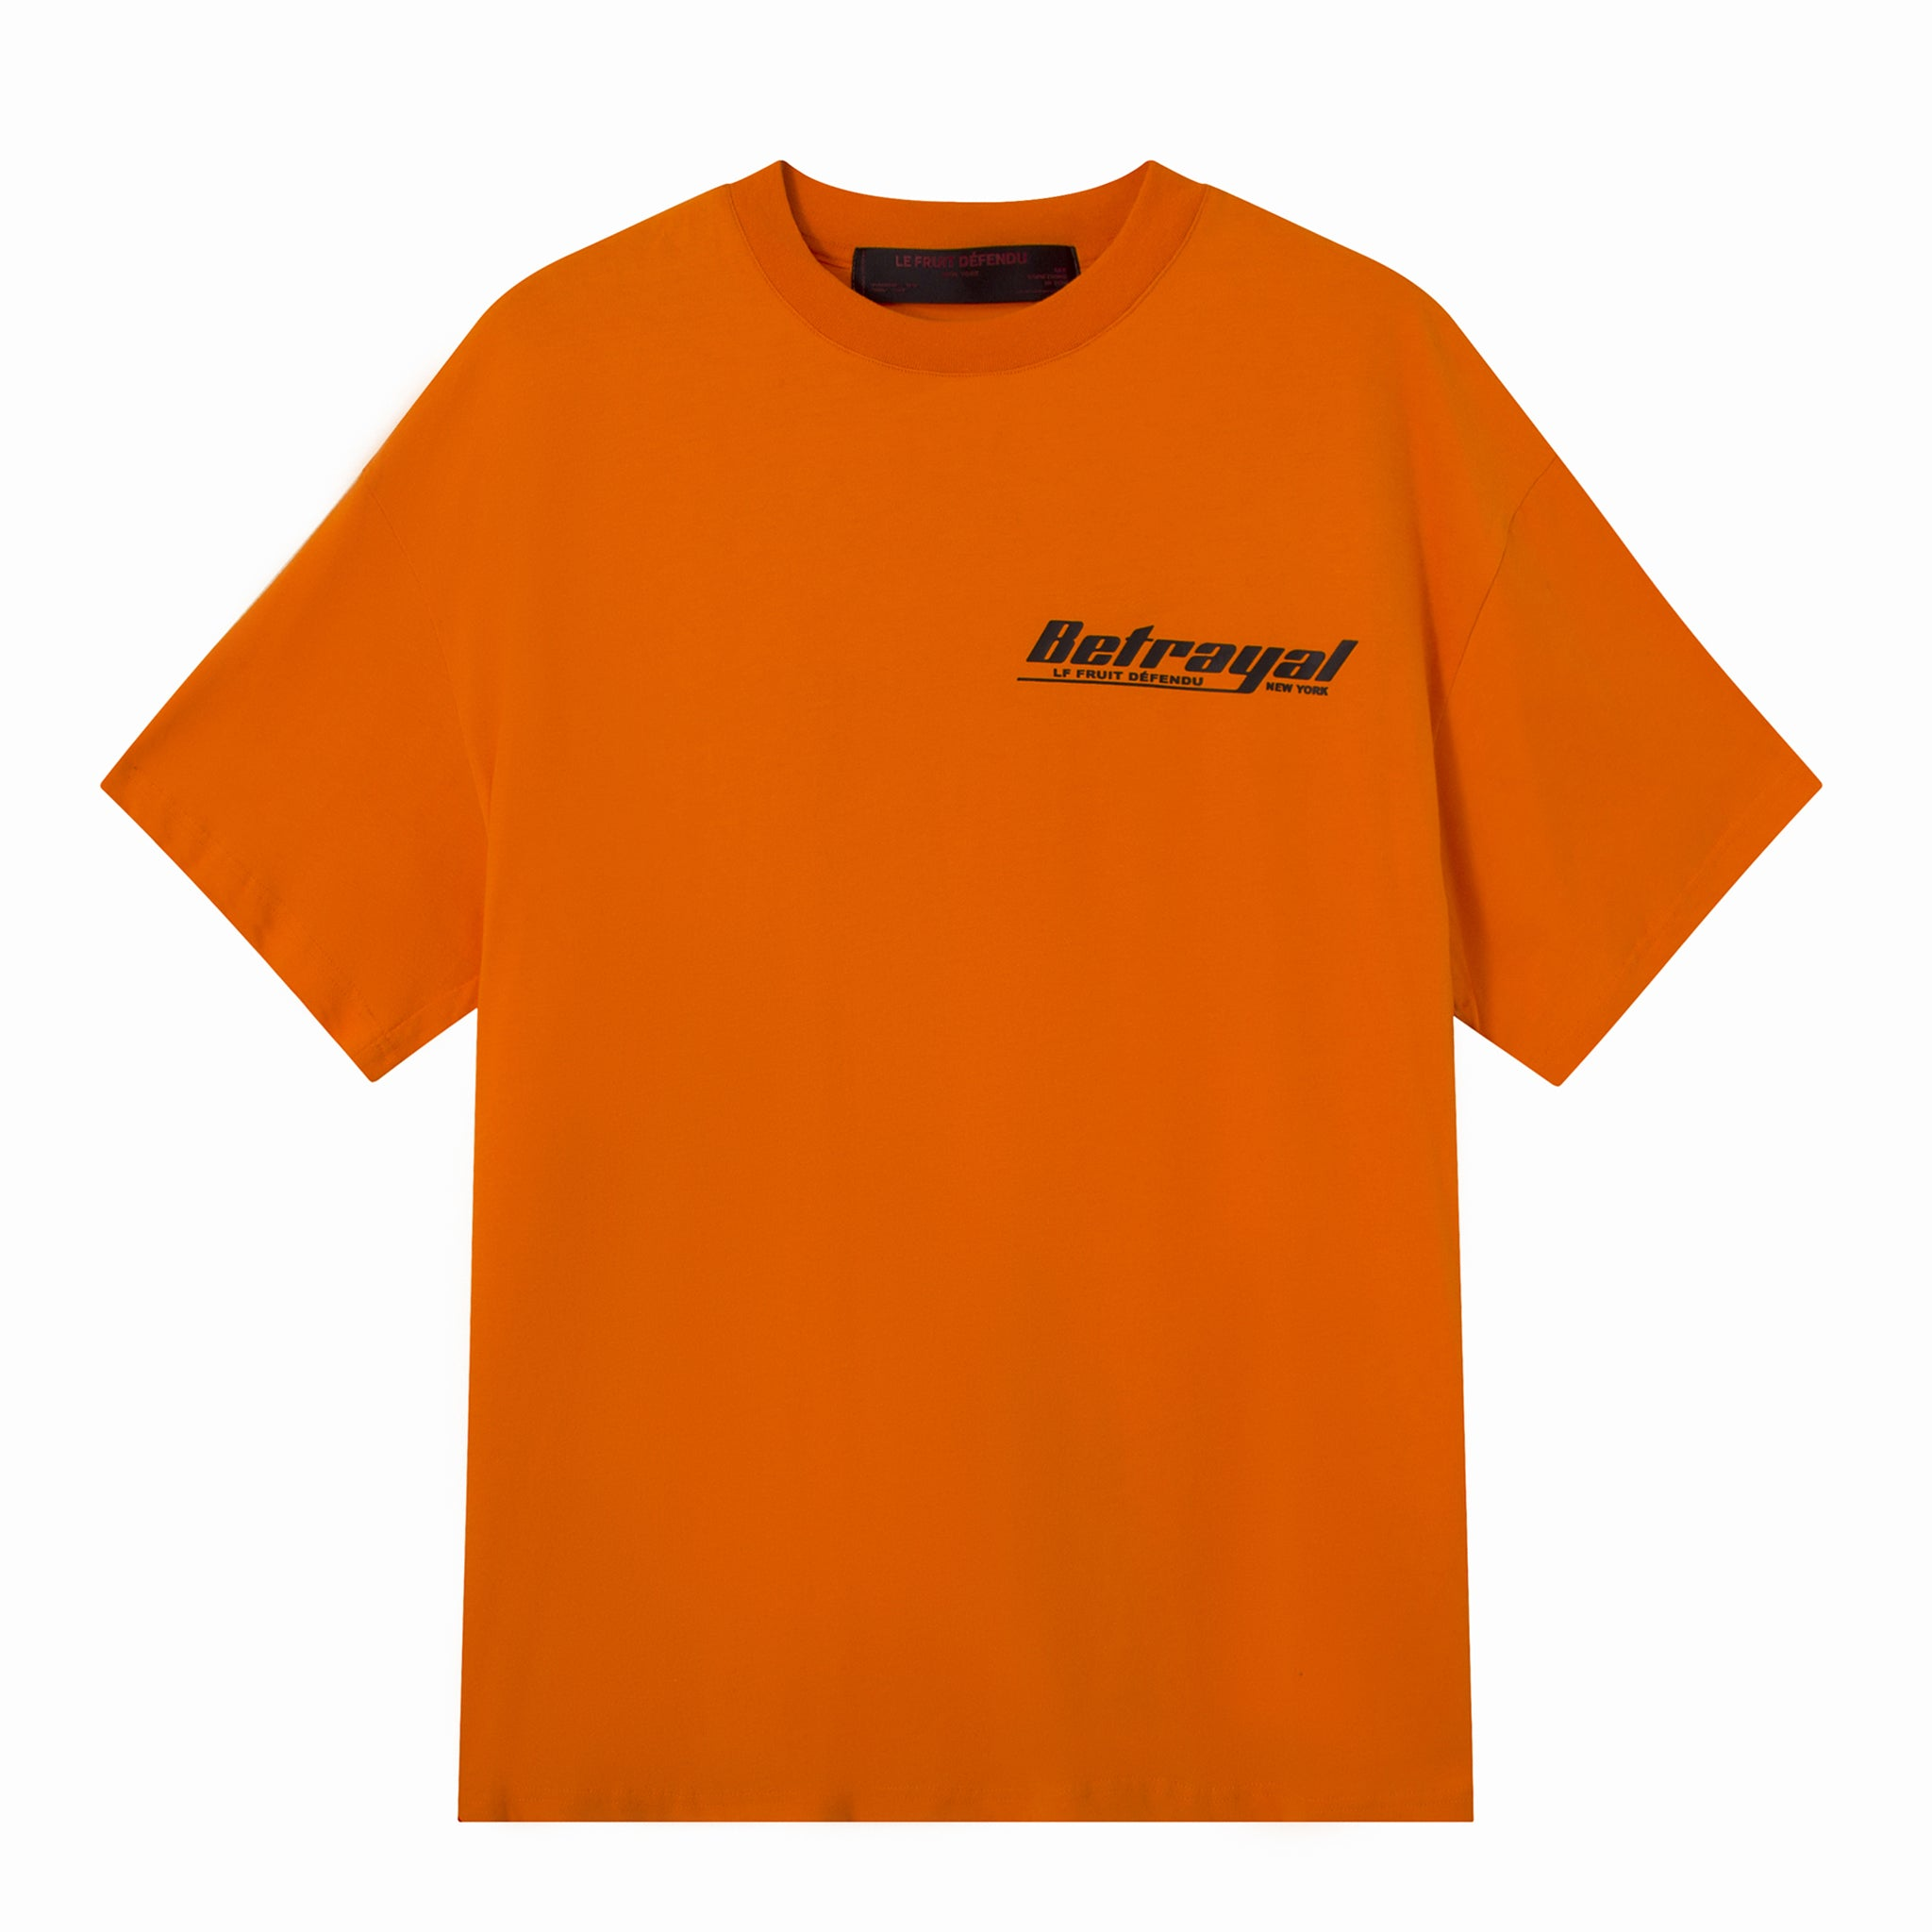 LFD Betrayal T-shirt - Orange